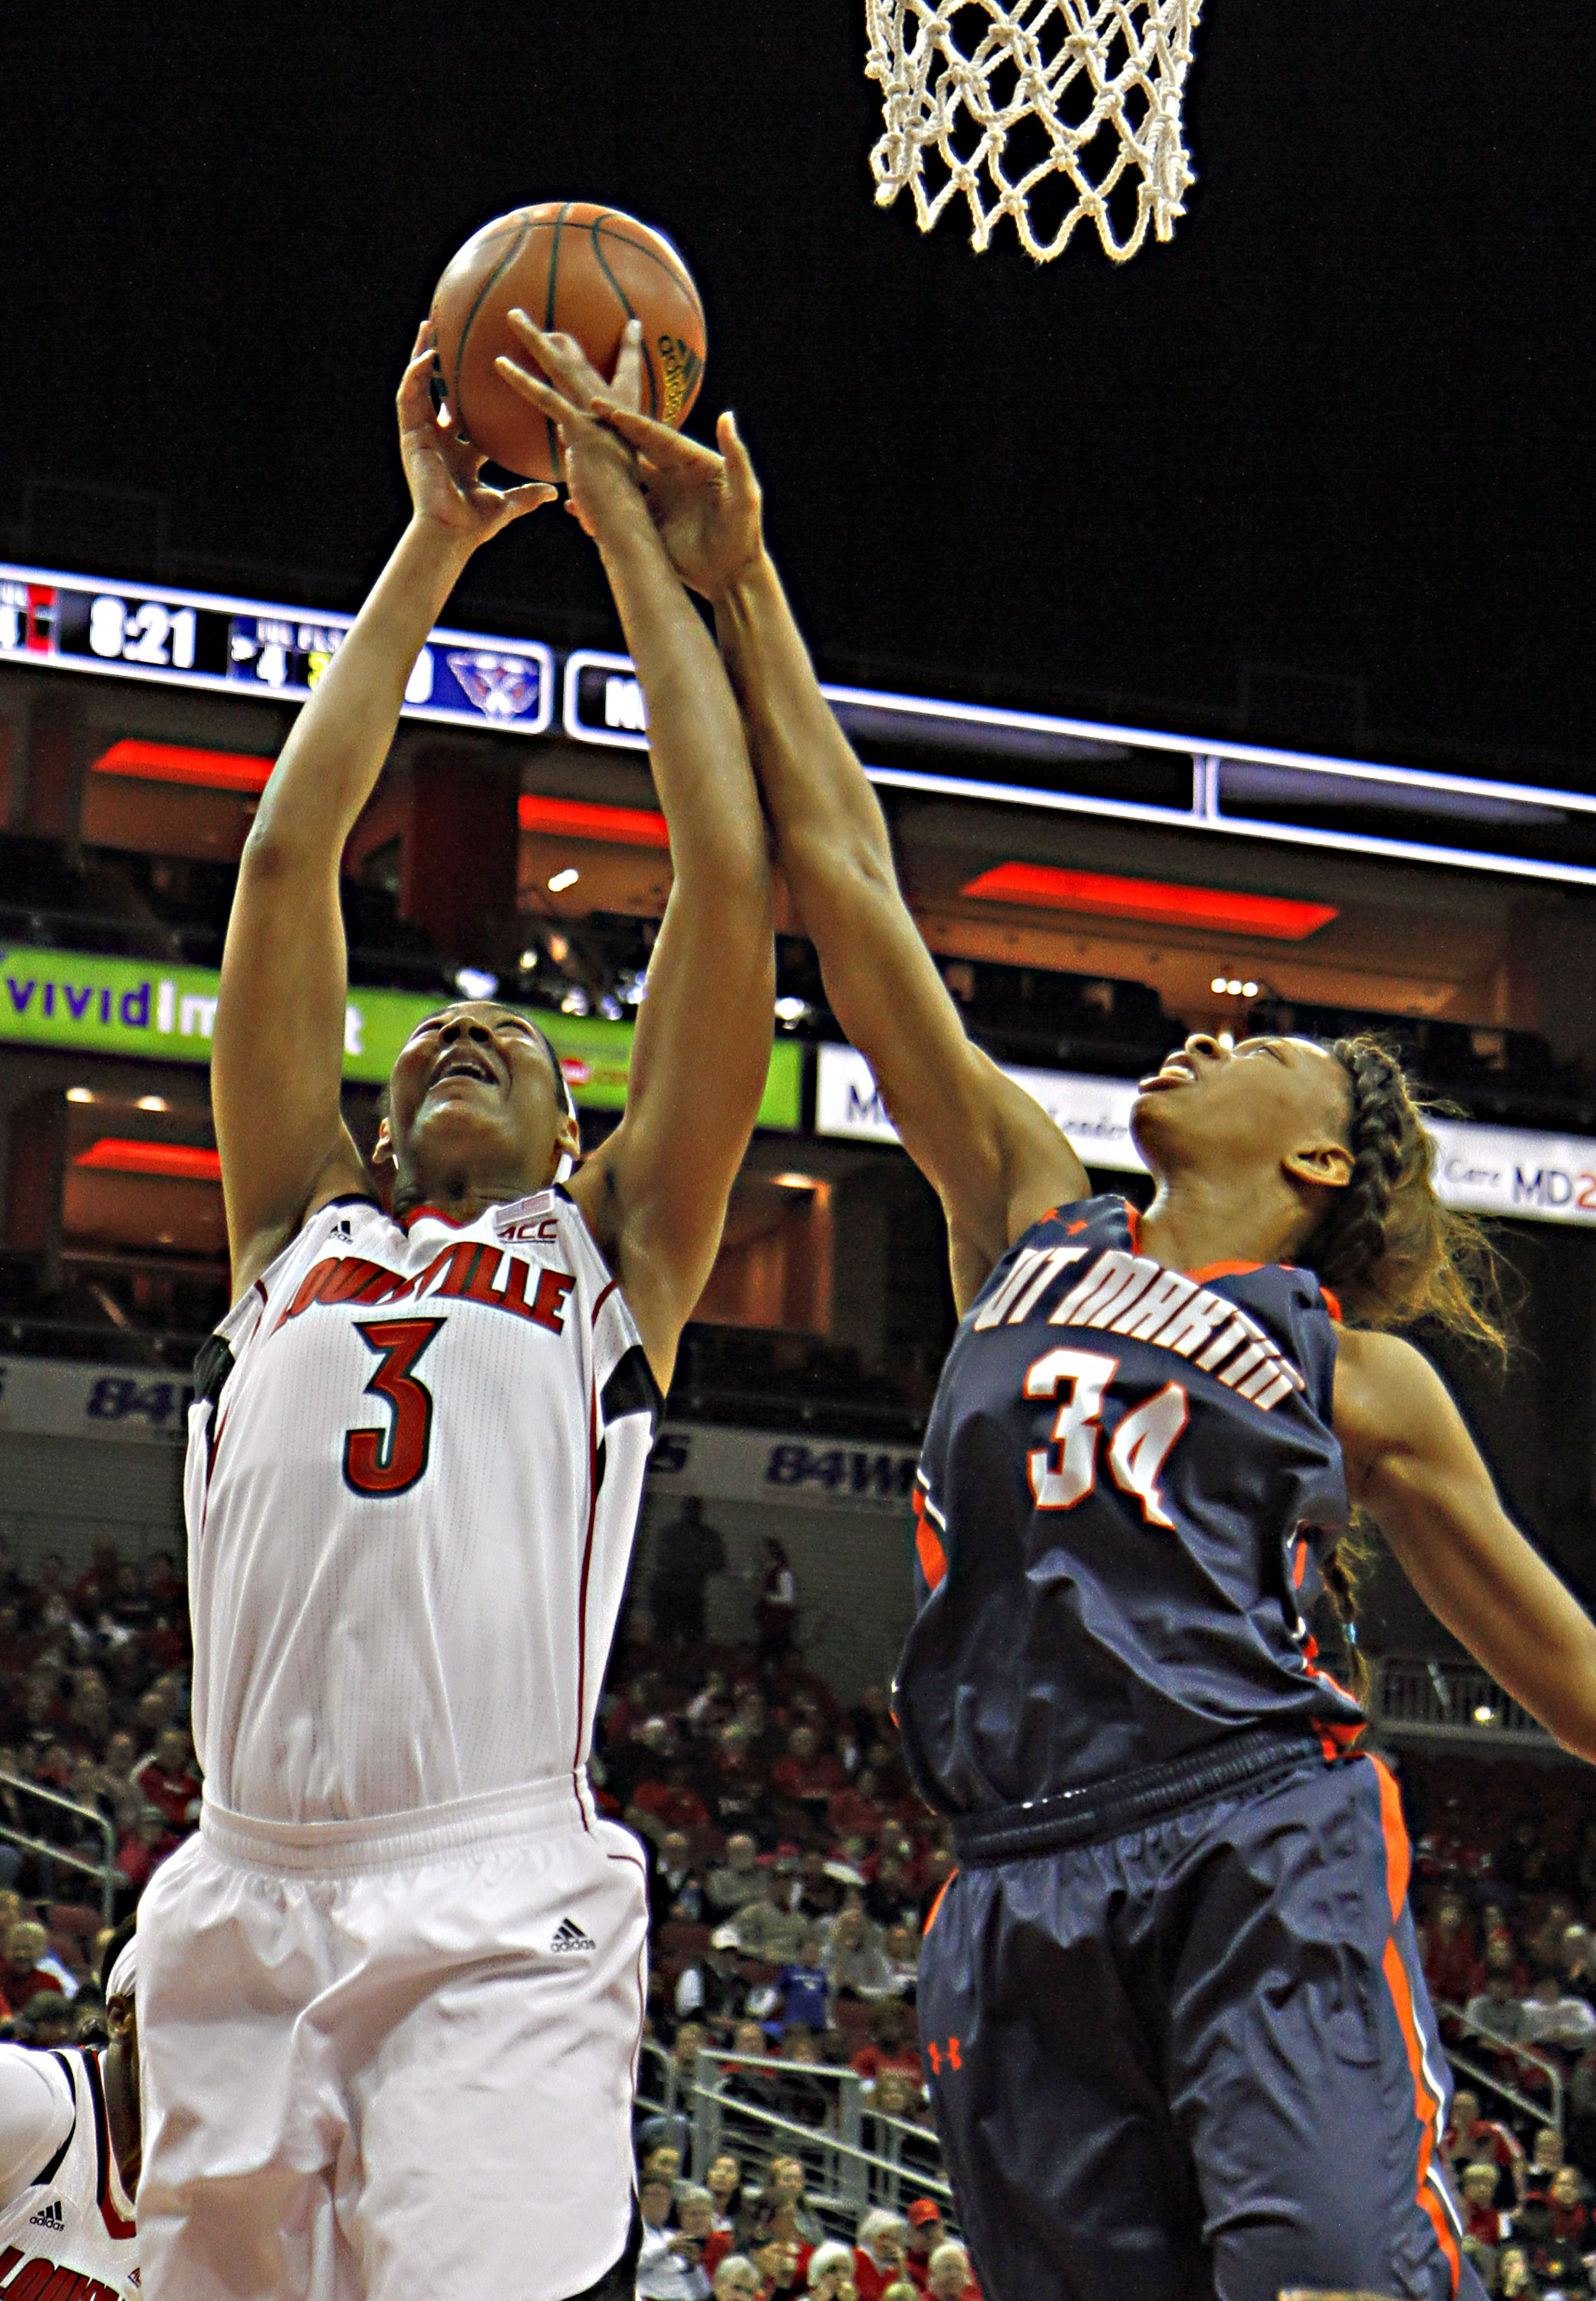 Louisville center Sheronne Vails (3) goes high to grab a rebound away from Tennessee-Martin forward Ashia Jones (34) in their NCAA college basketball game in Louisville, Ky., Sunday, Nov. Nov. 16, 2014. (AP Photo/Garry Jones)